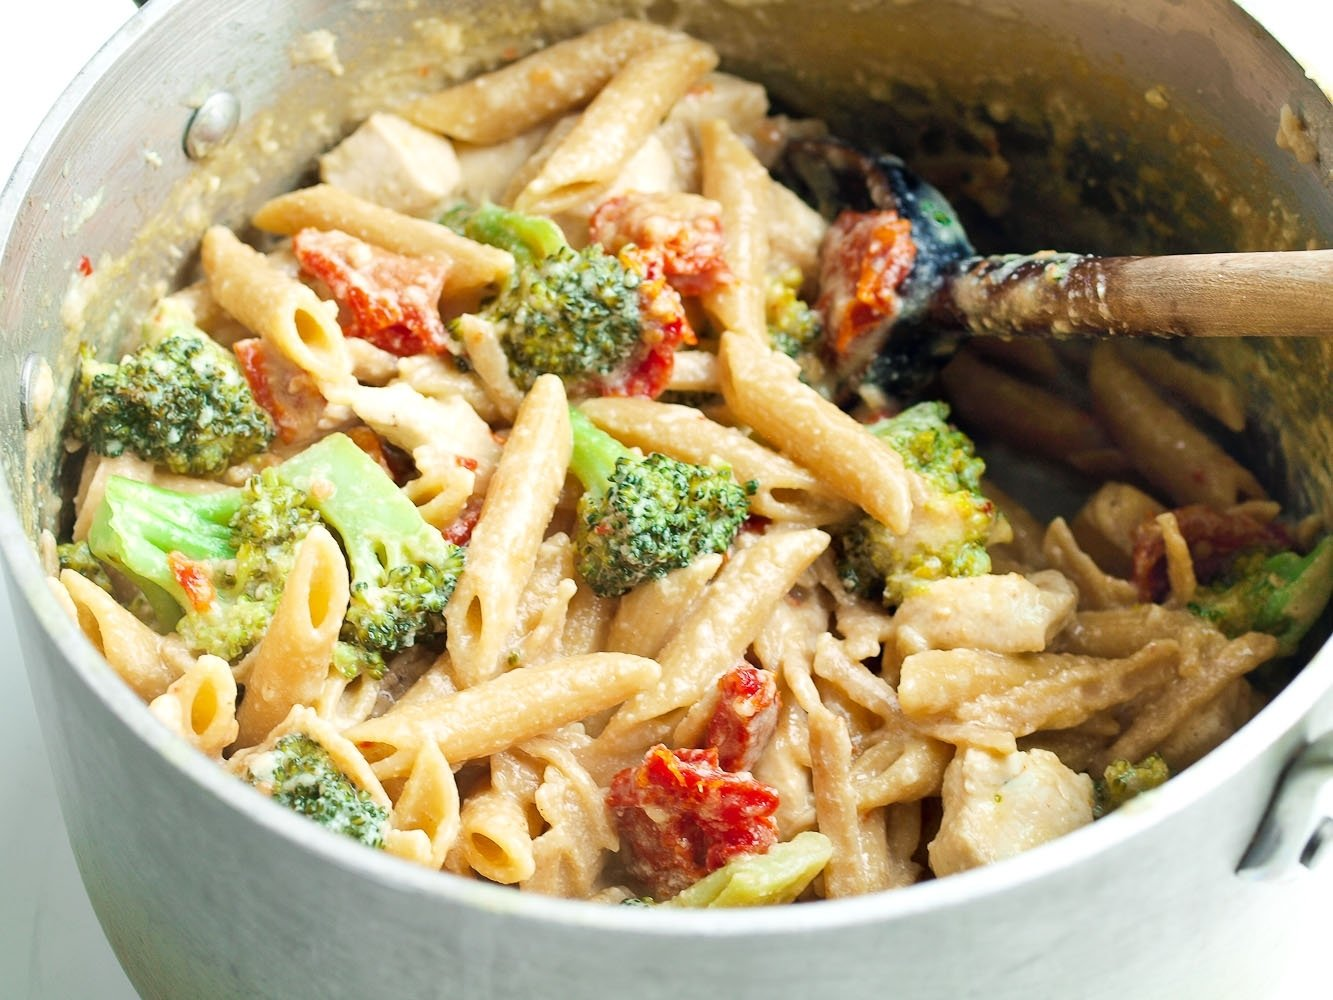 10 Stylish Good Dinner Ideas For Kids tangy one pot chicken and veggie pasta dinner healthy ideas for kids 2 2020